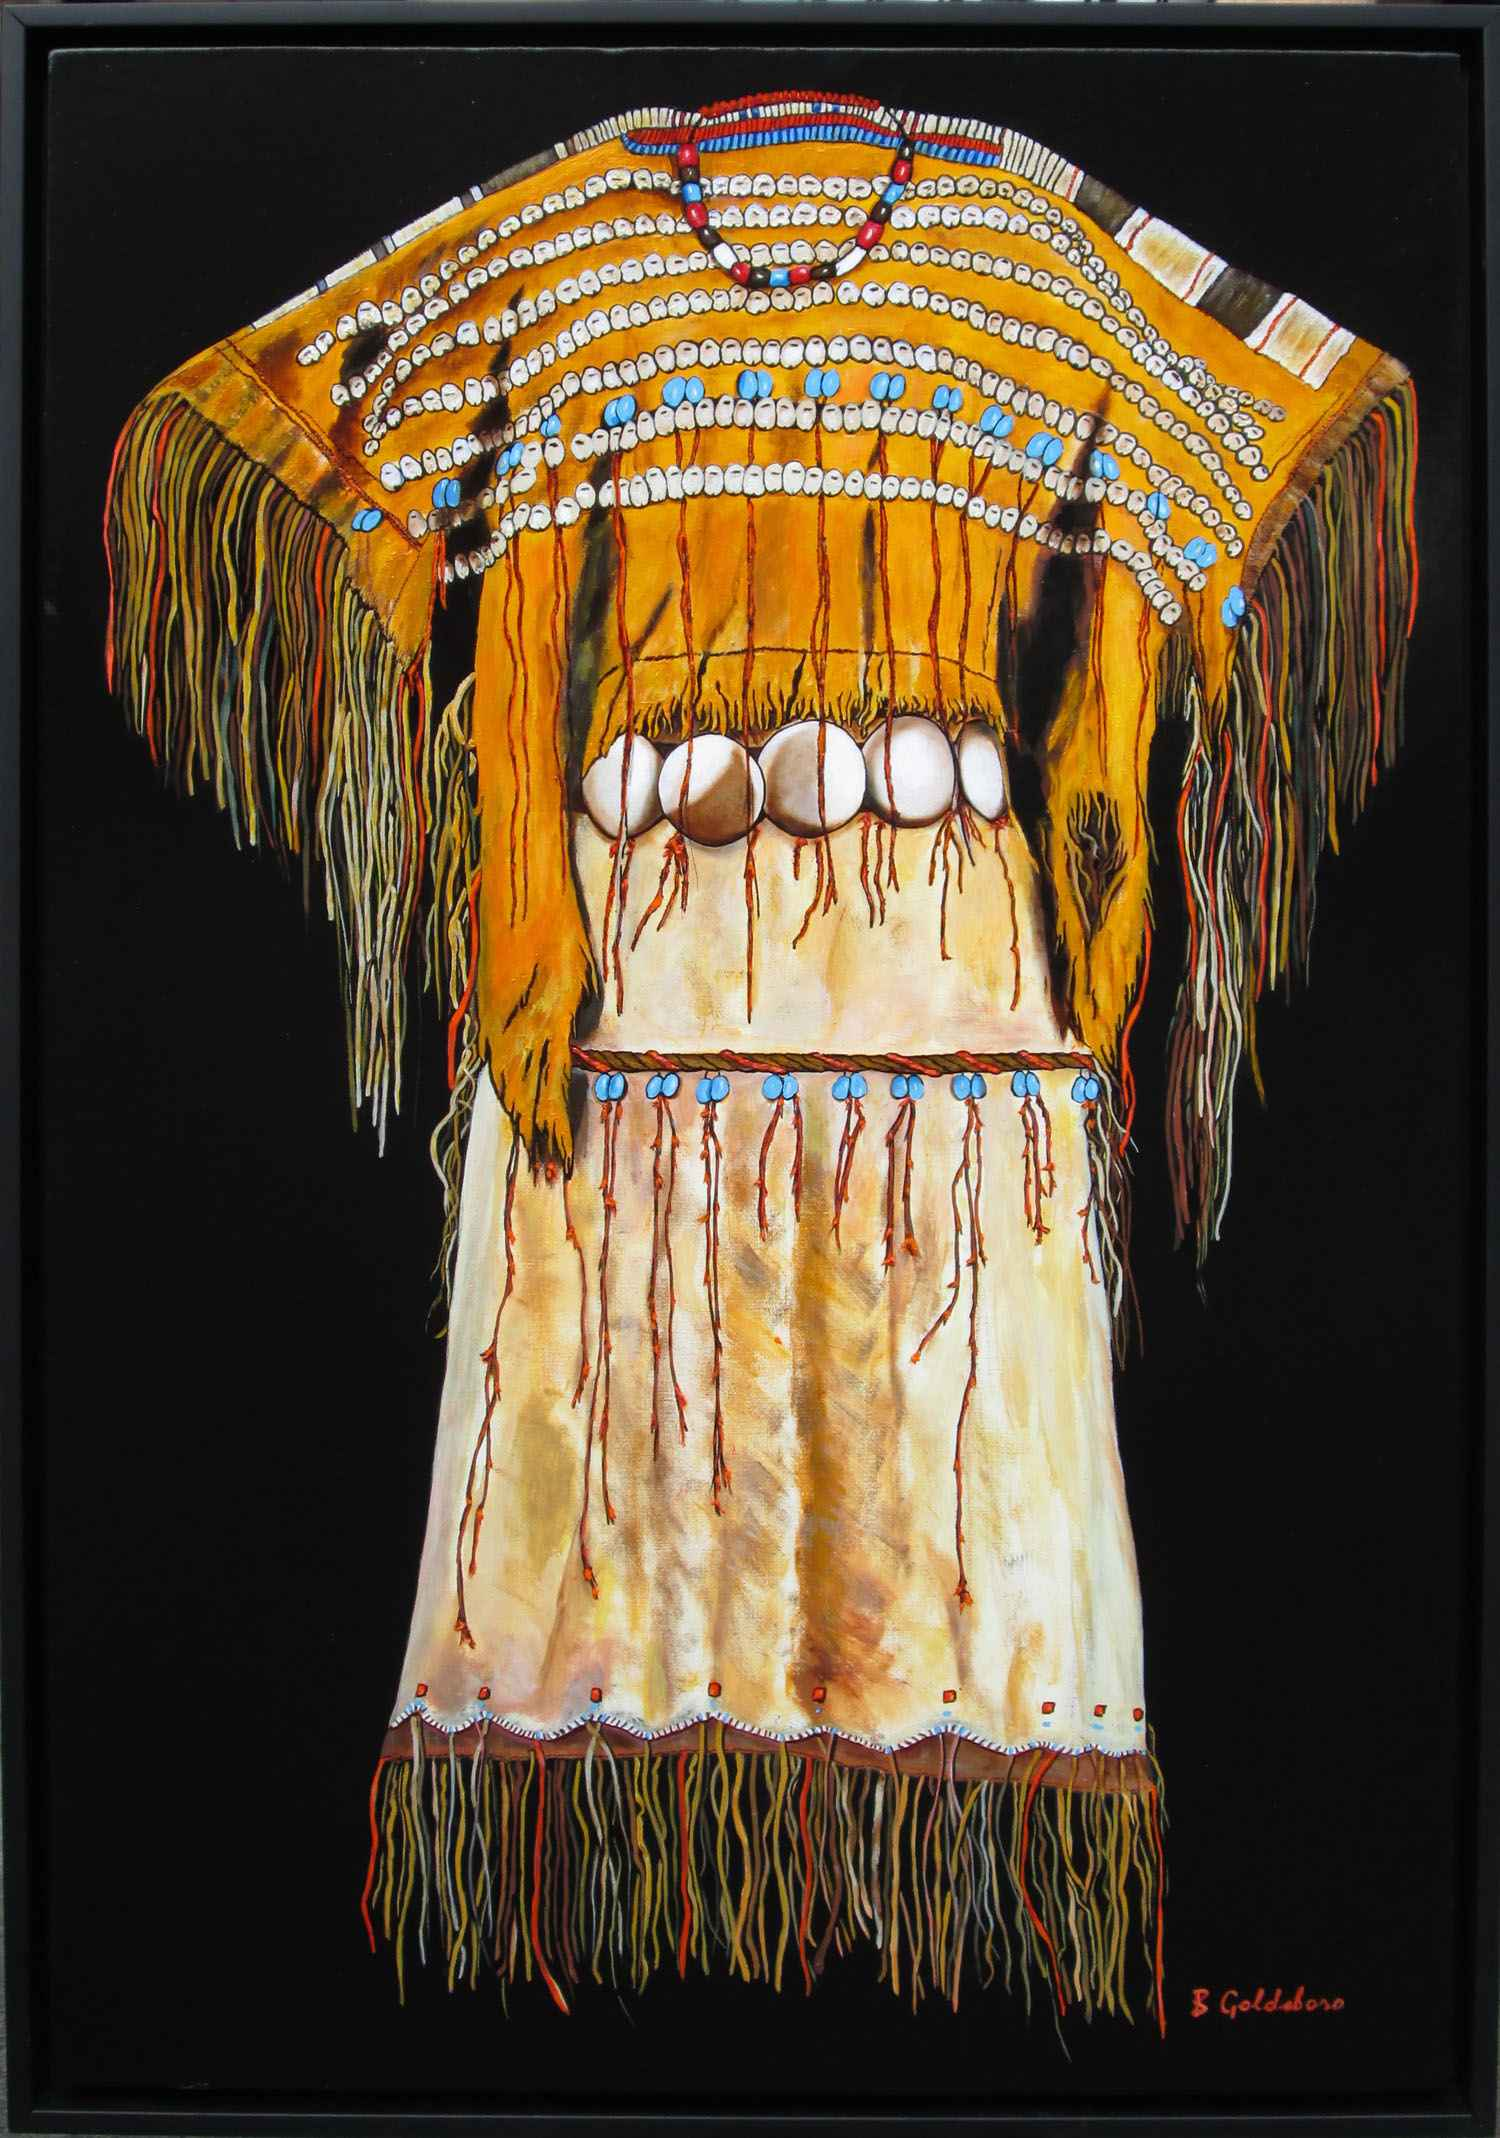 Cheyenne Fringed Dress by  Bobby Goldsboro - Masterpiece Online